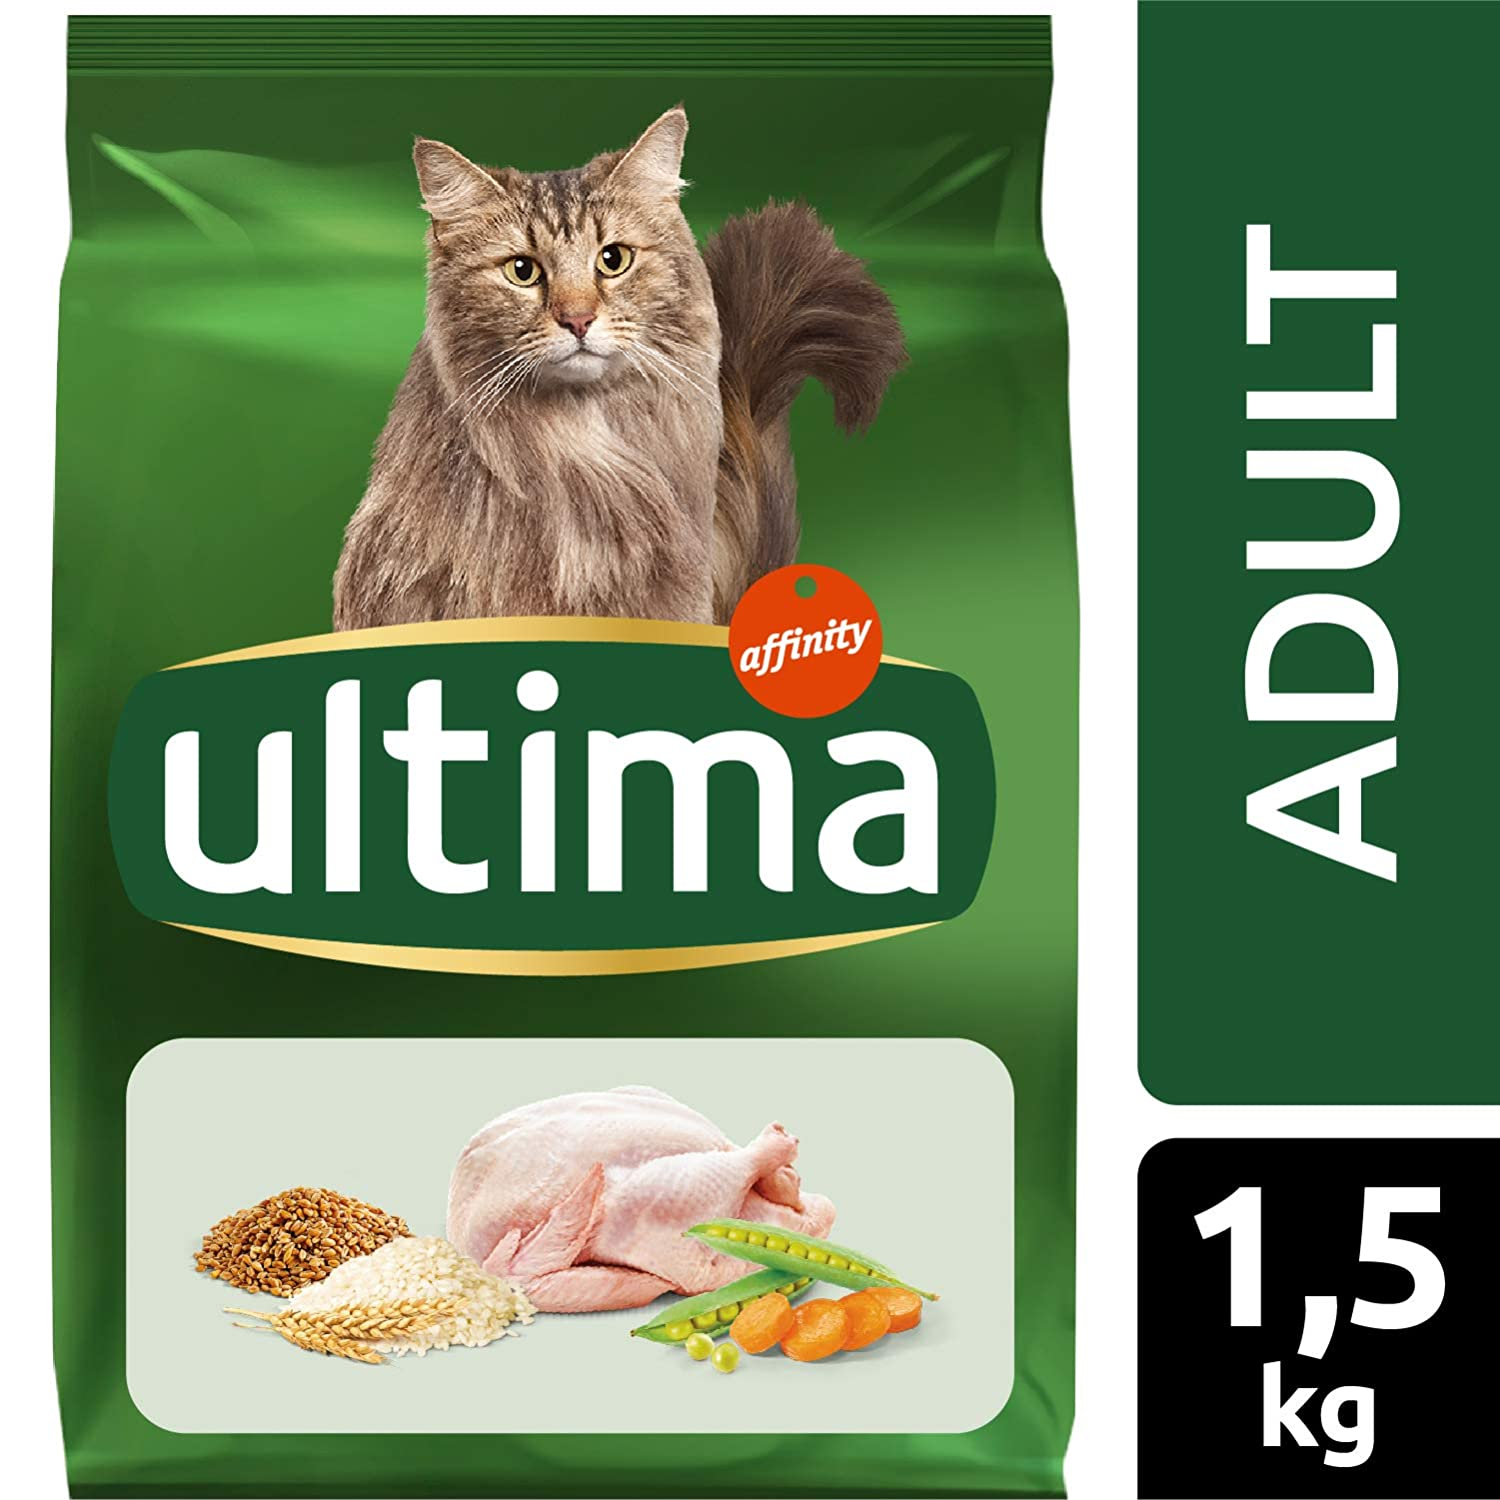 Ultima Pienso para Gatos con Pollo - 1.5 kg: Amazon.es: Amazon Pantry